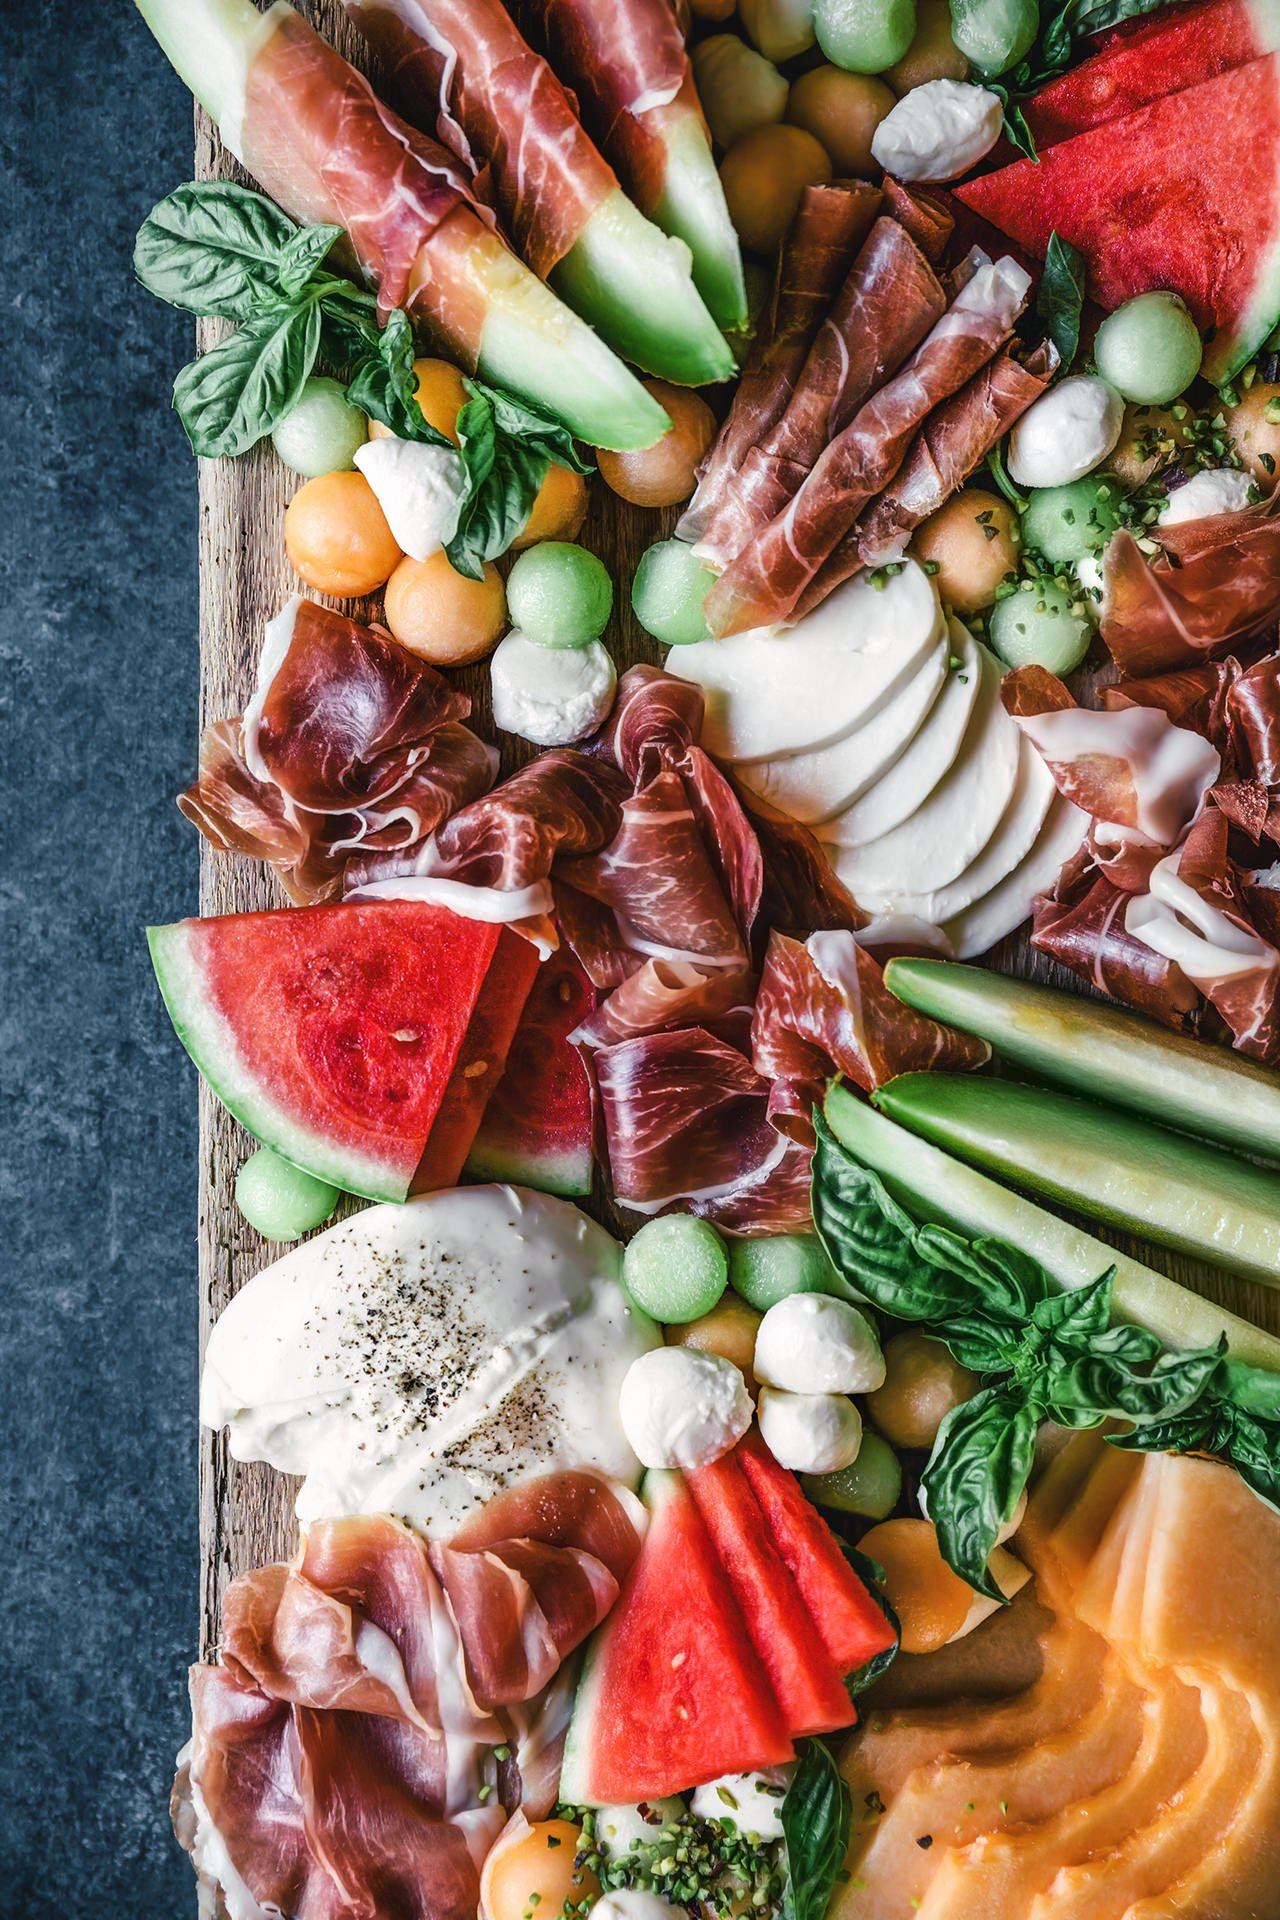 Melon and Prosciutto Platter | HonestlyYUM (honestlyyum.com)